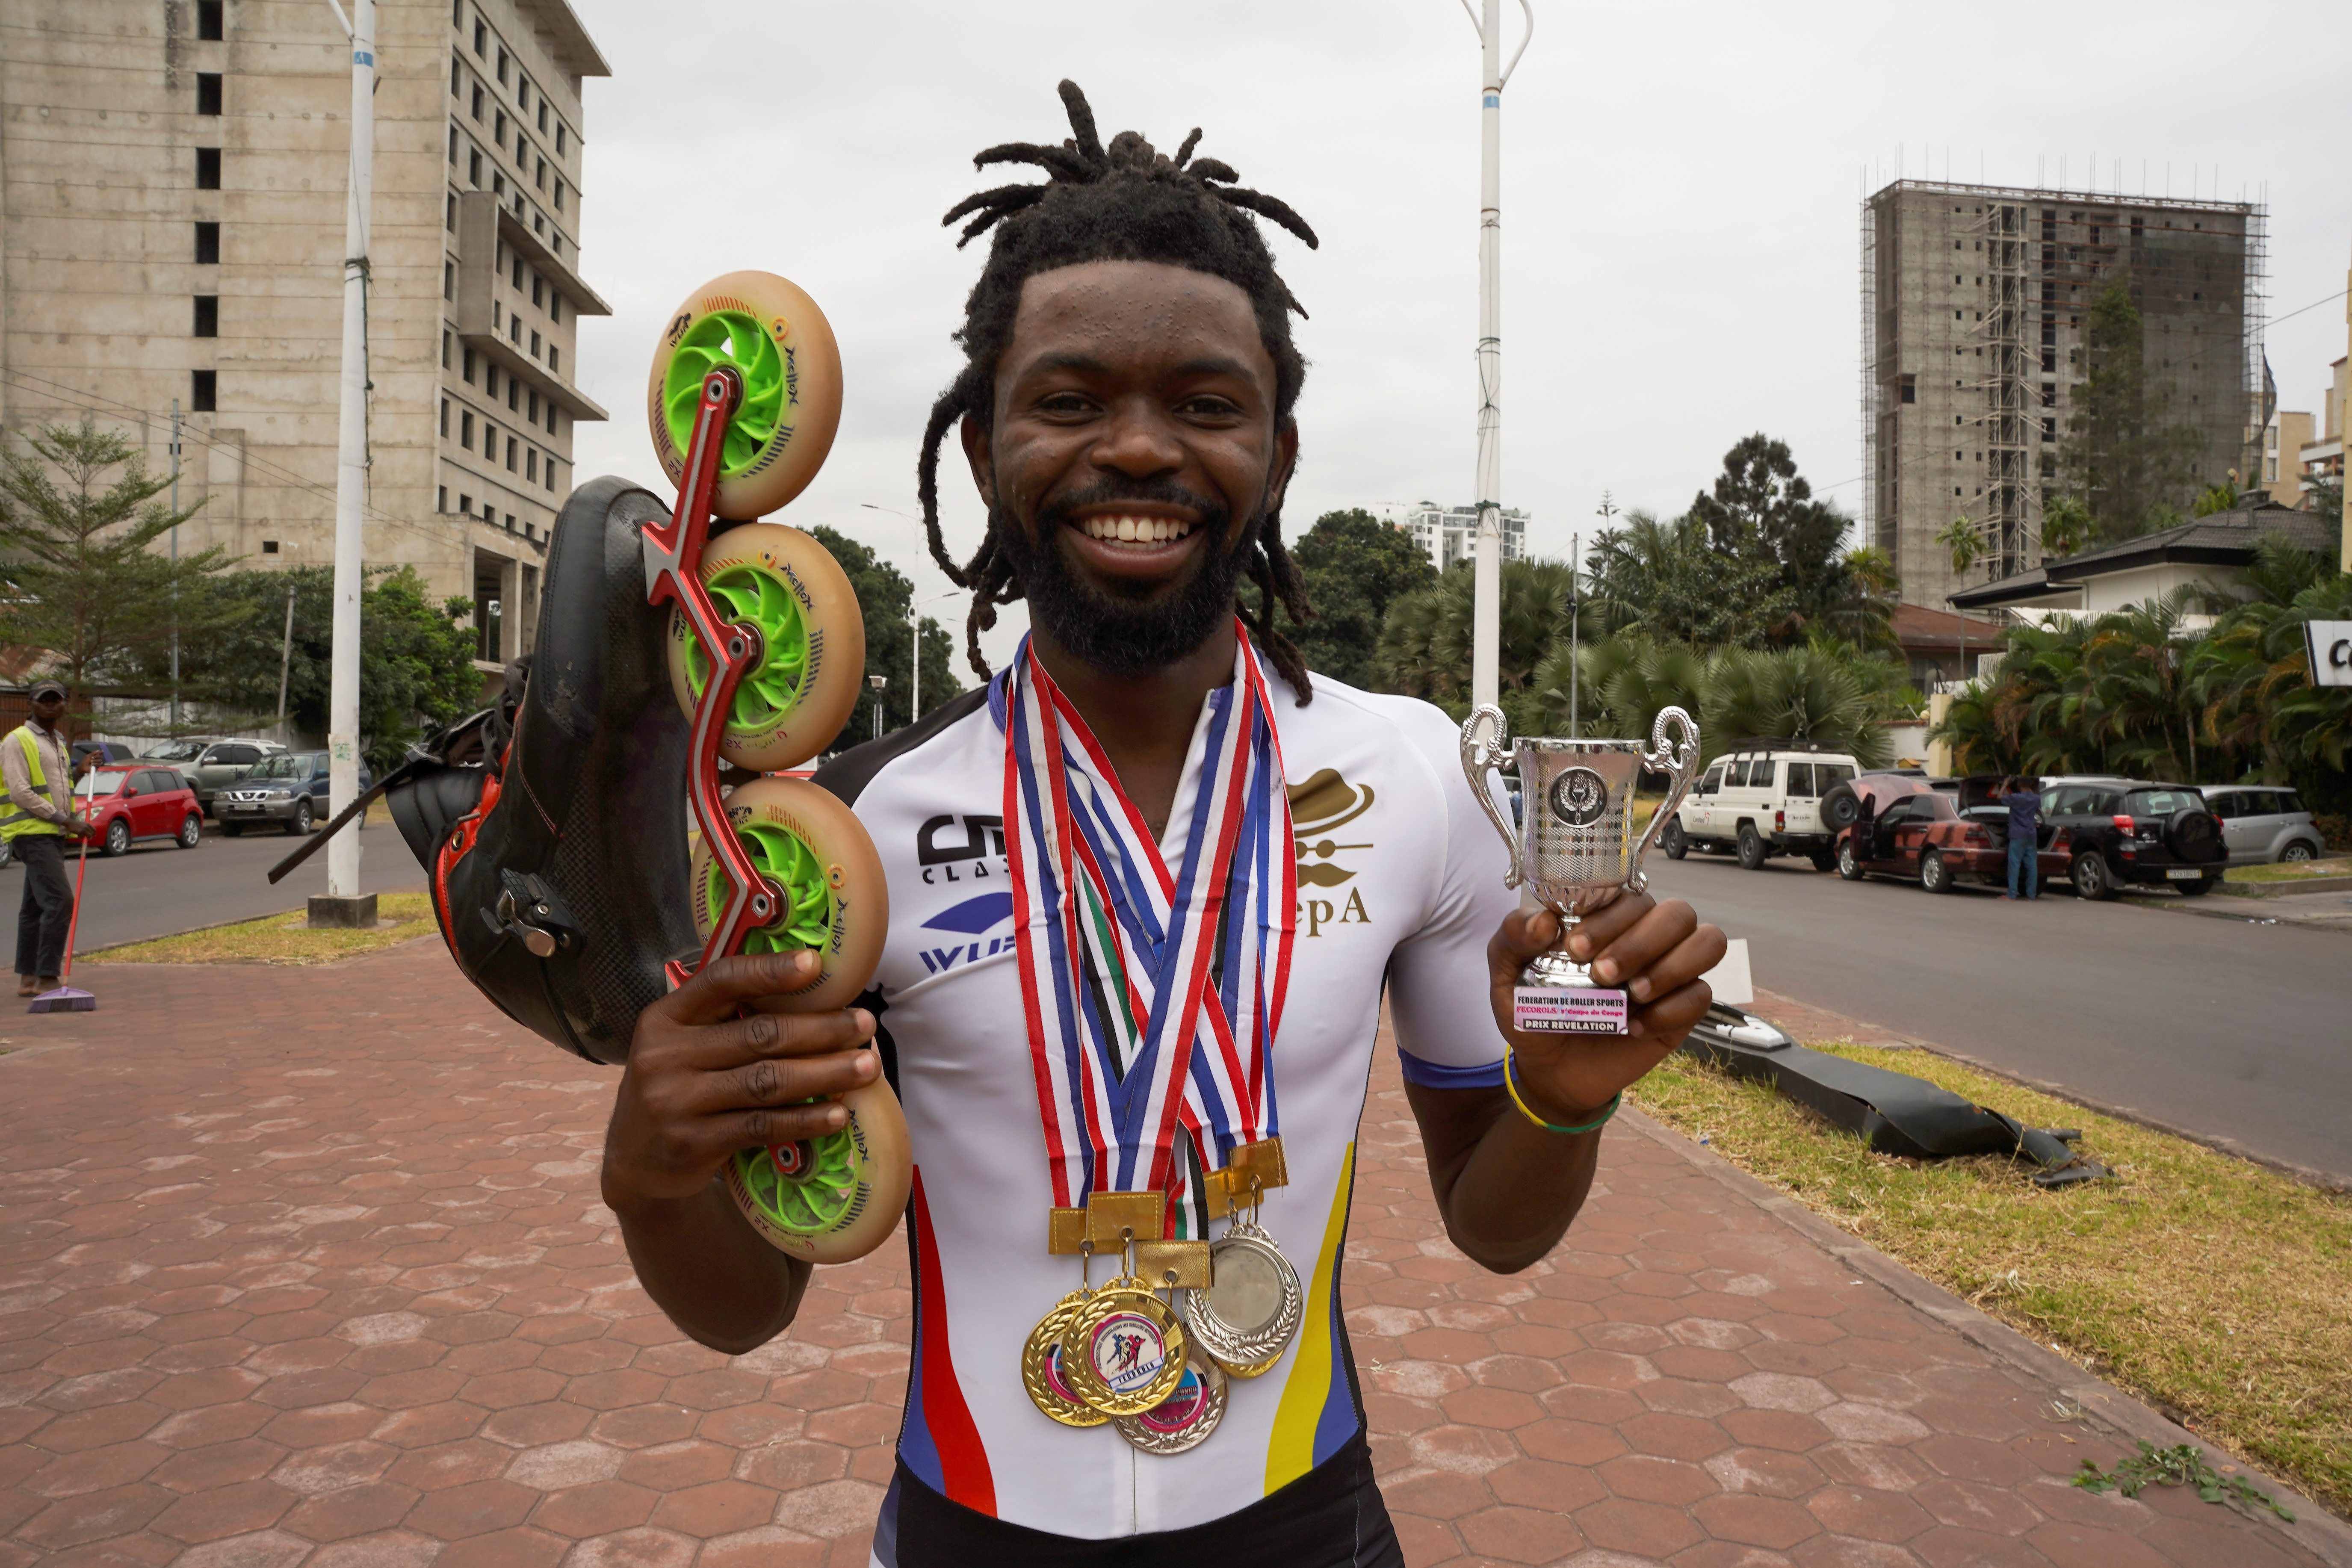 Serge Makolo holds his roller skate and a trophy he won at the speed skating competition, in Kinshasa, Democratic Republic of Congo, September 16, 2021. REUTERS/Hereward Holland